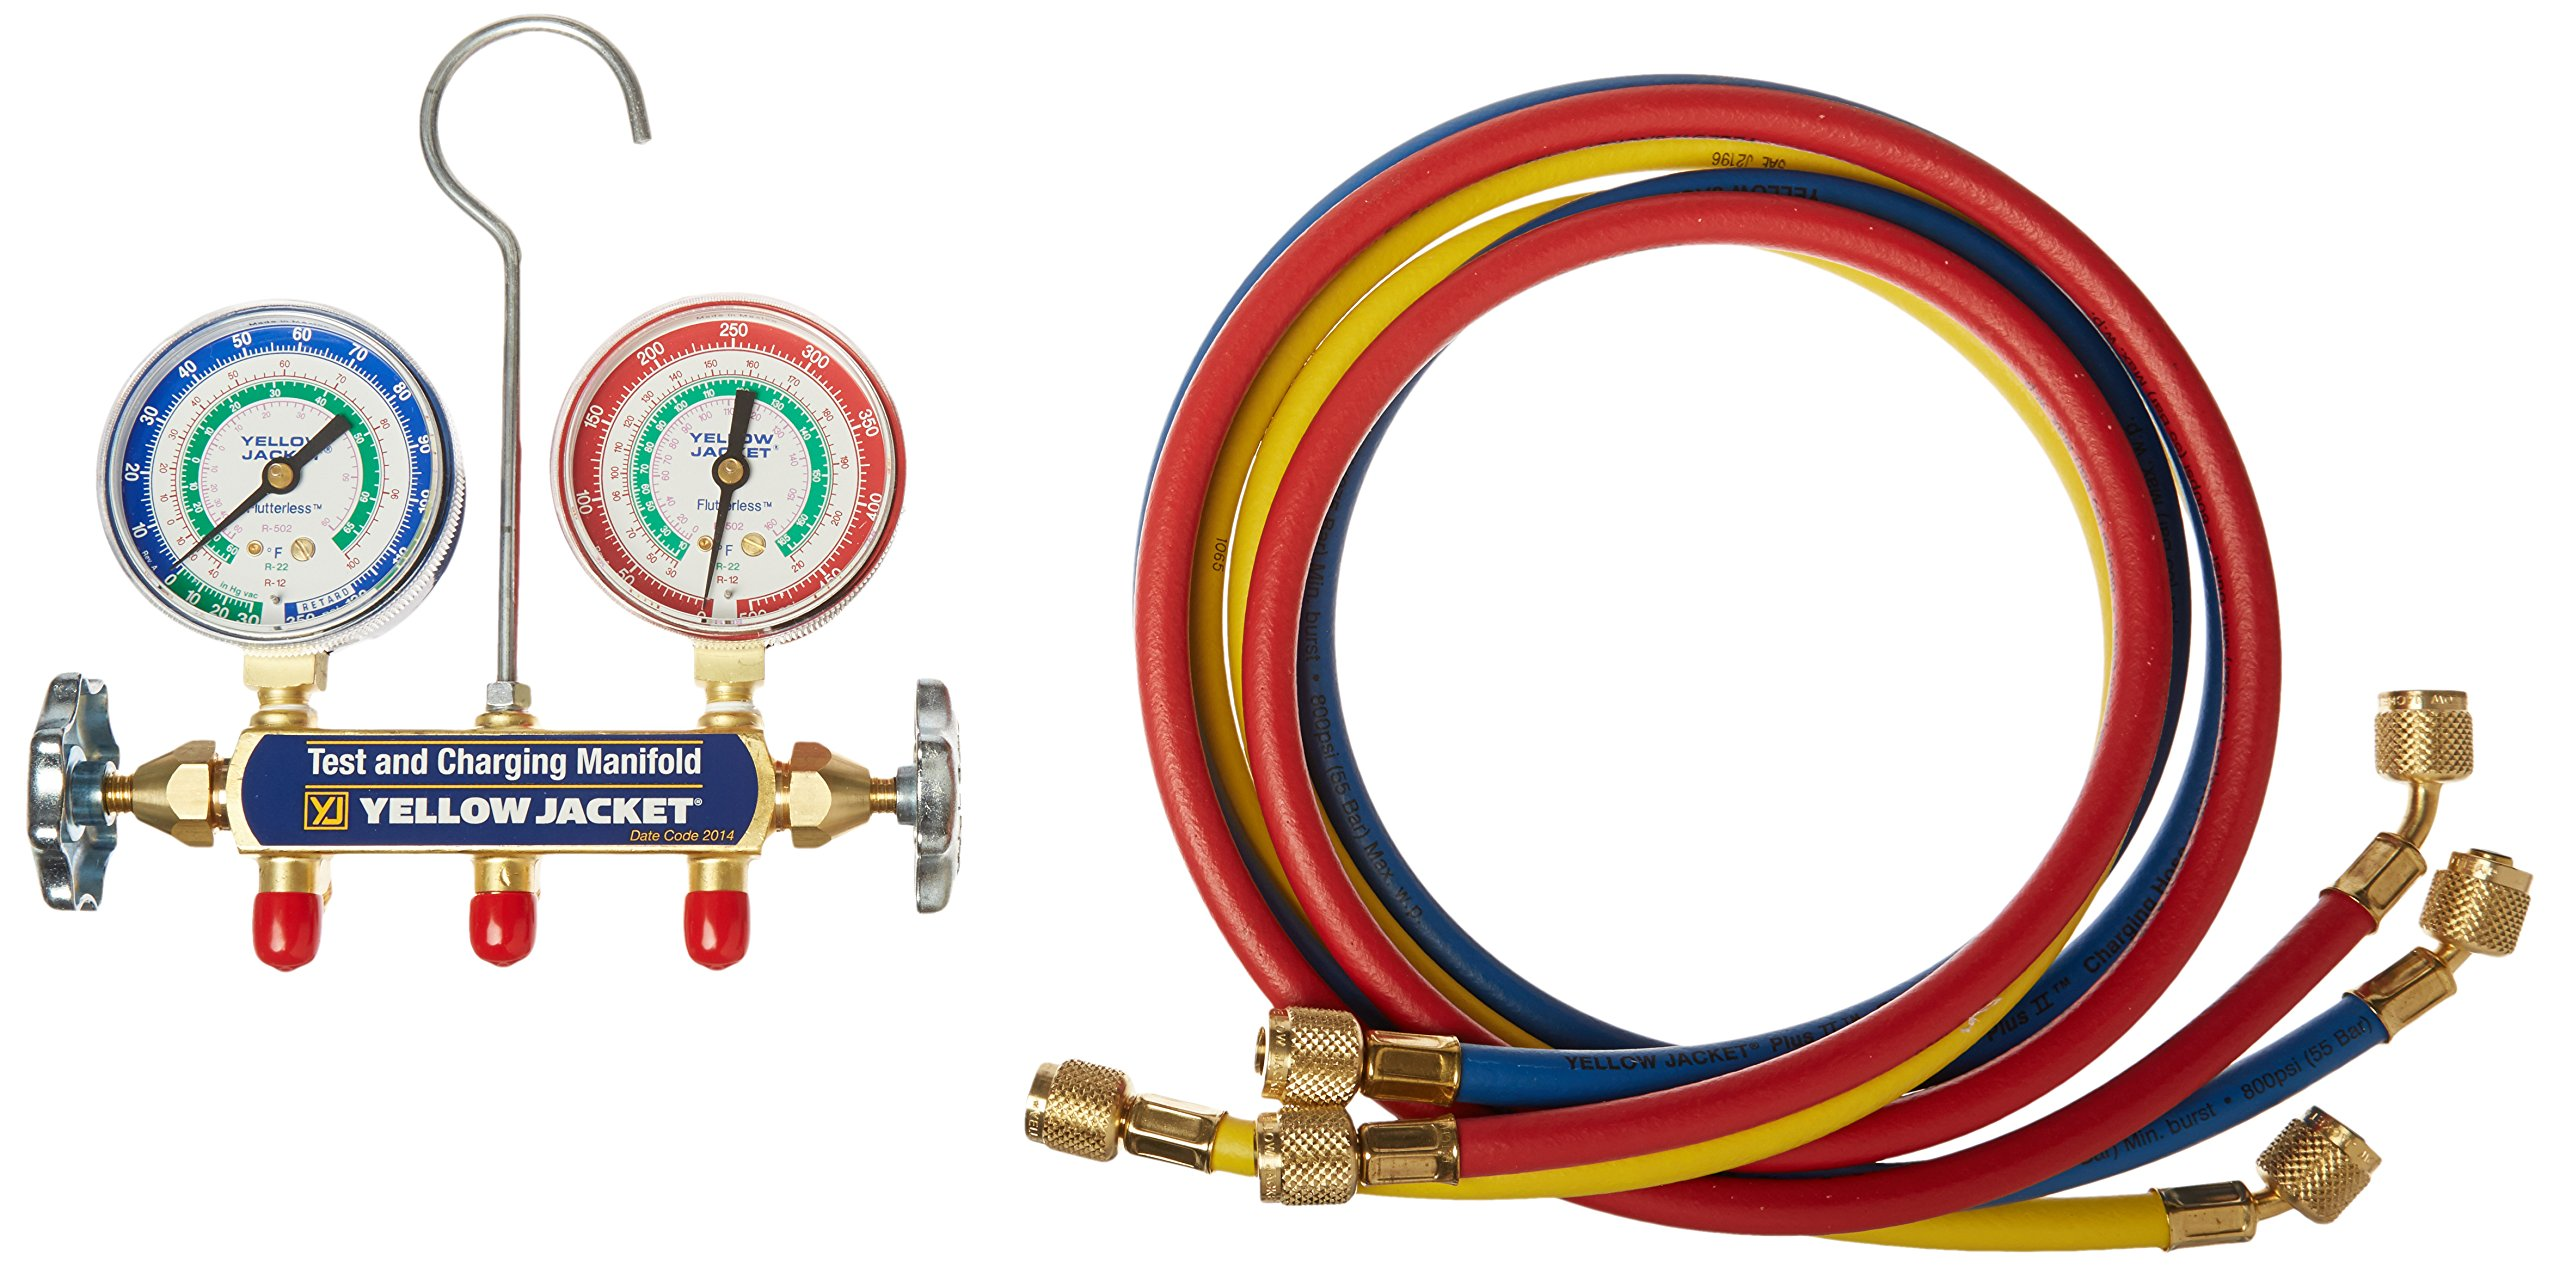 Yellow Jacket 41215 Series 41 Manifolds with 2-1/2'' Gauges, 60'', psi, R-12/22/502, Red/Yellow/Blue